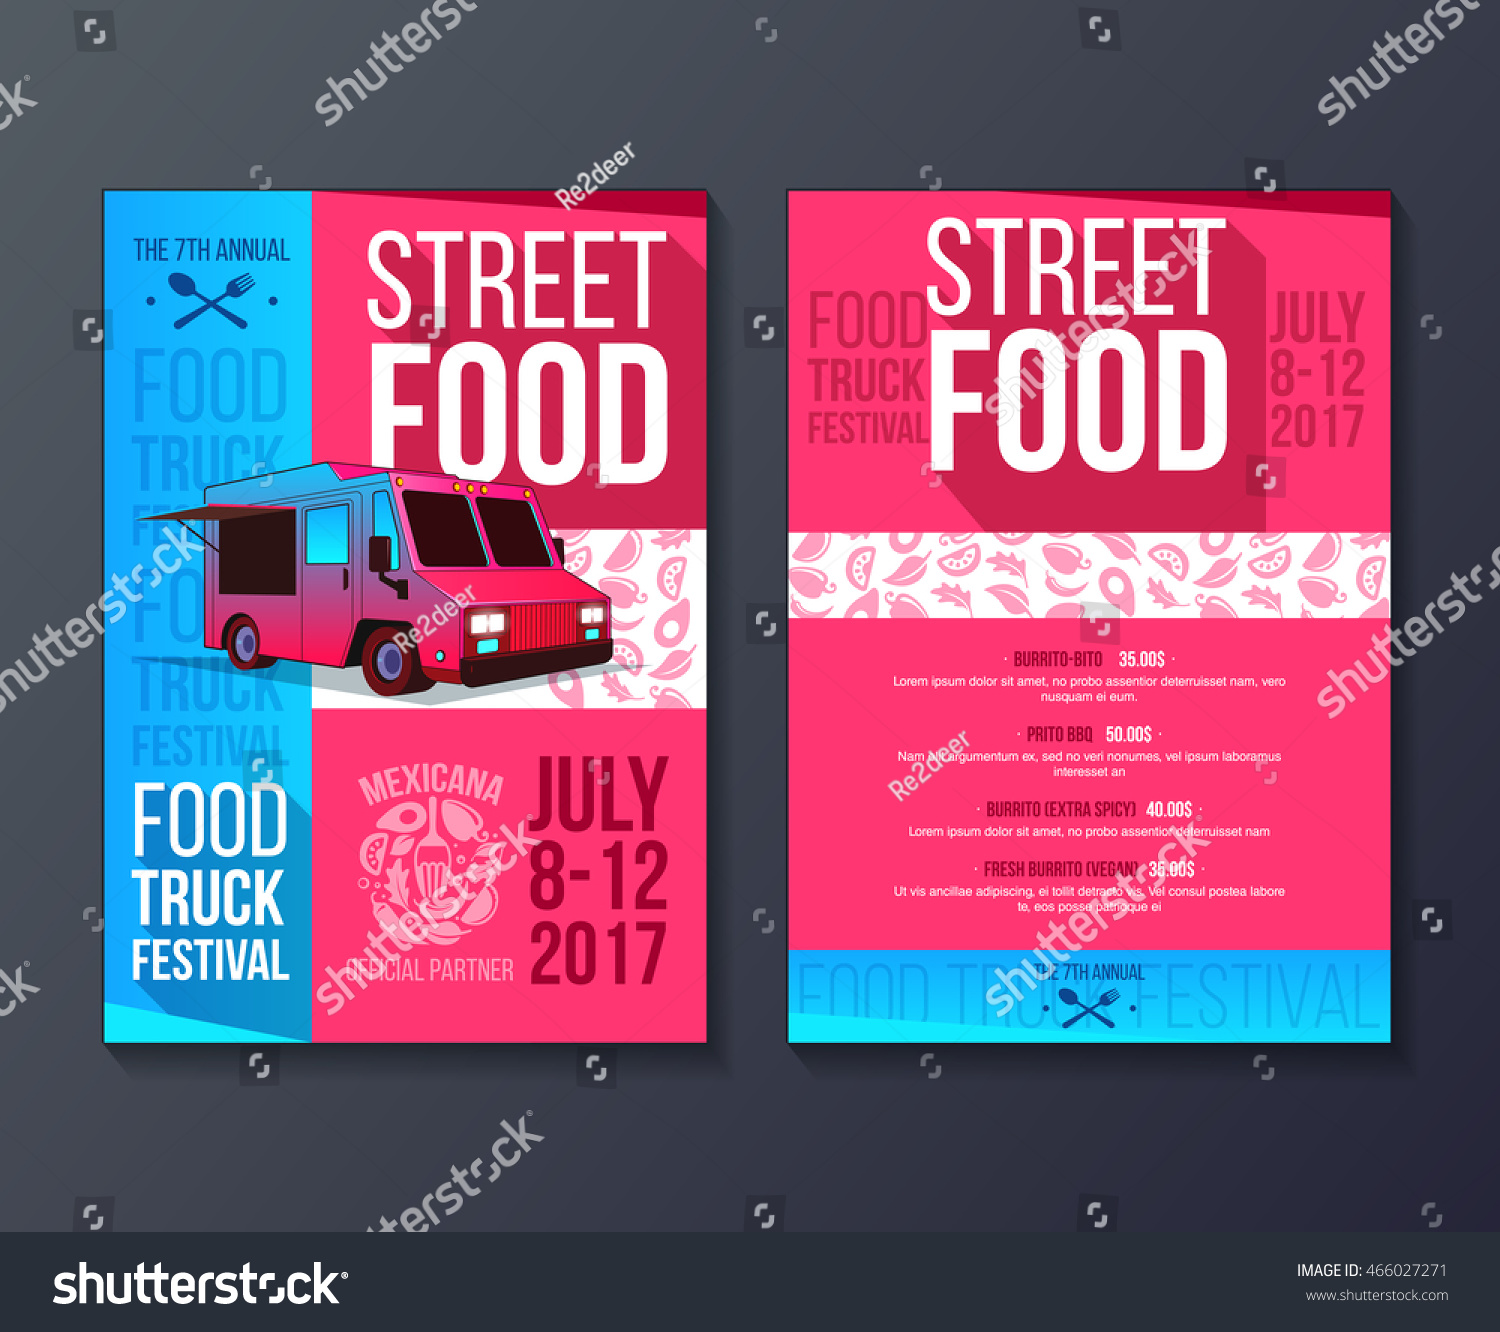 Creative Party Invitation On Food Truck Stock Vector 466027271 ...